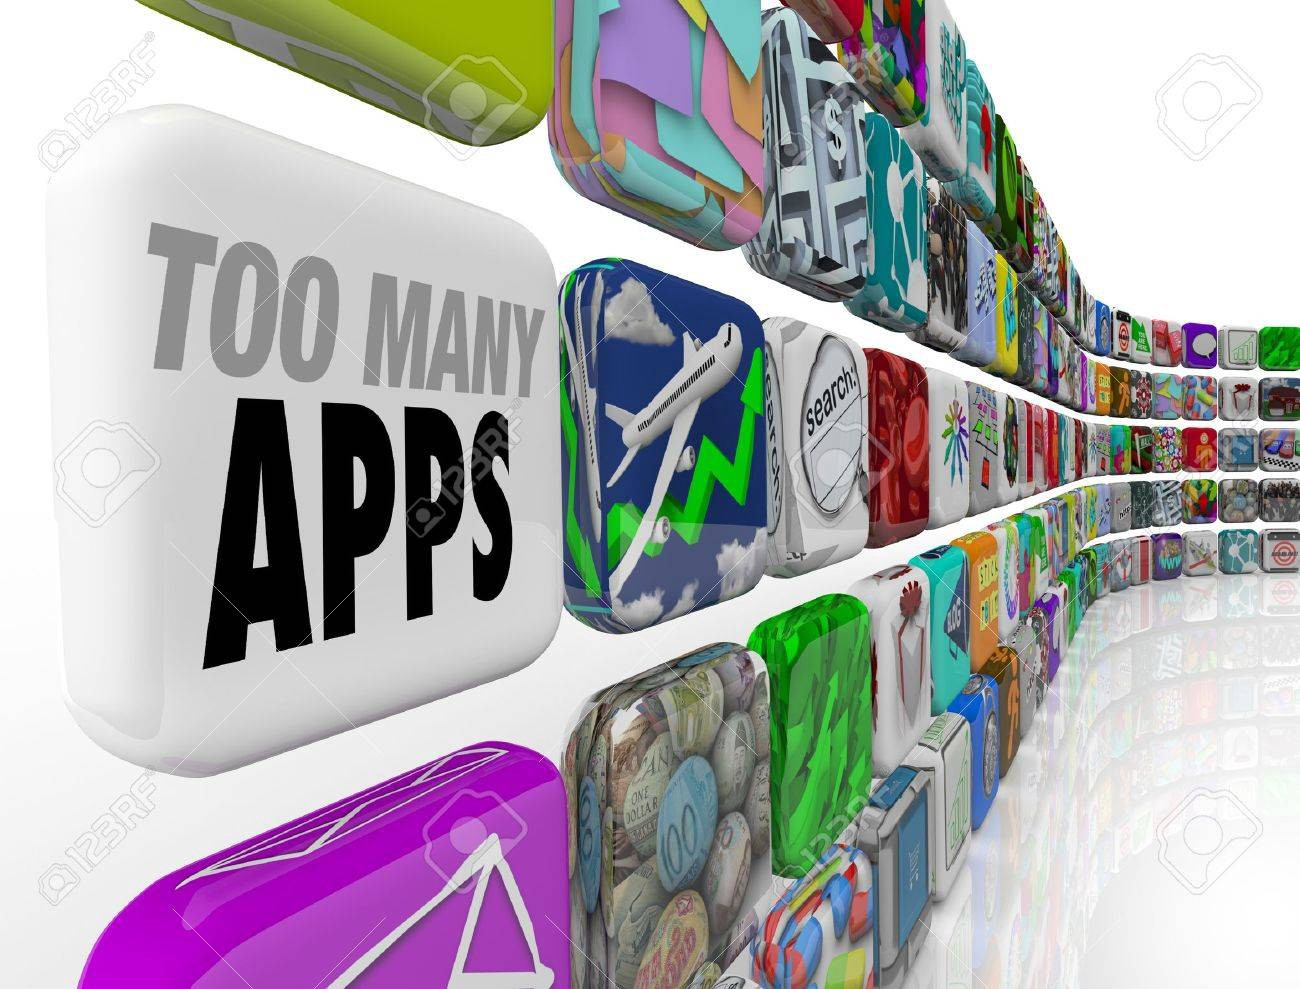 Too many apps in the world